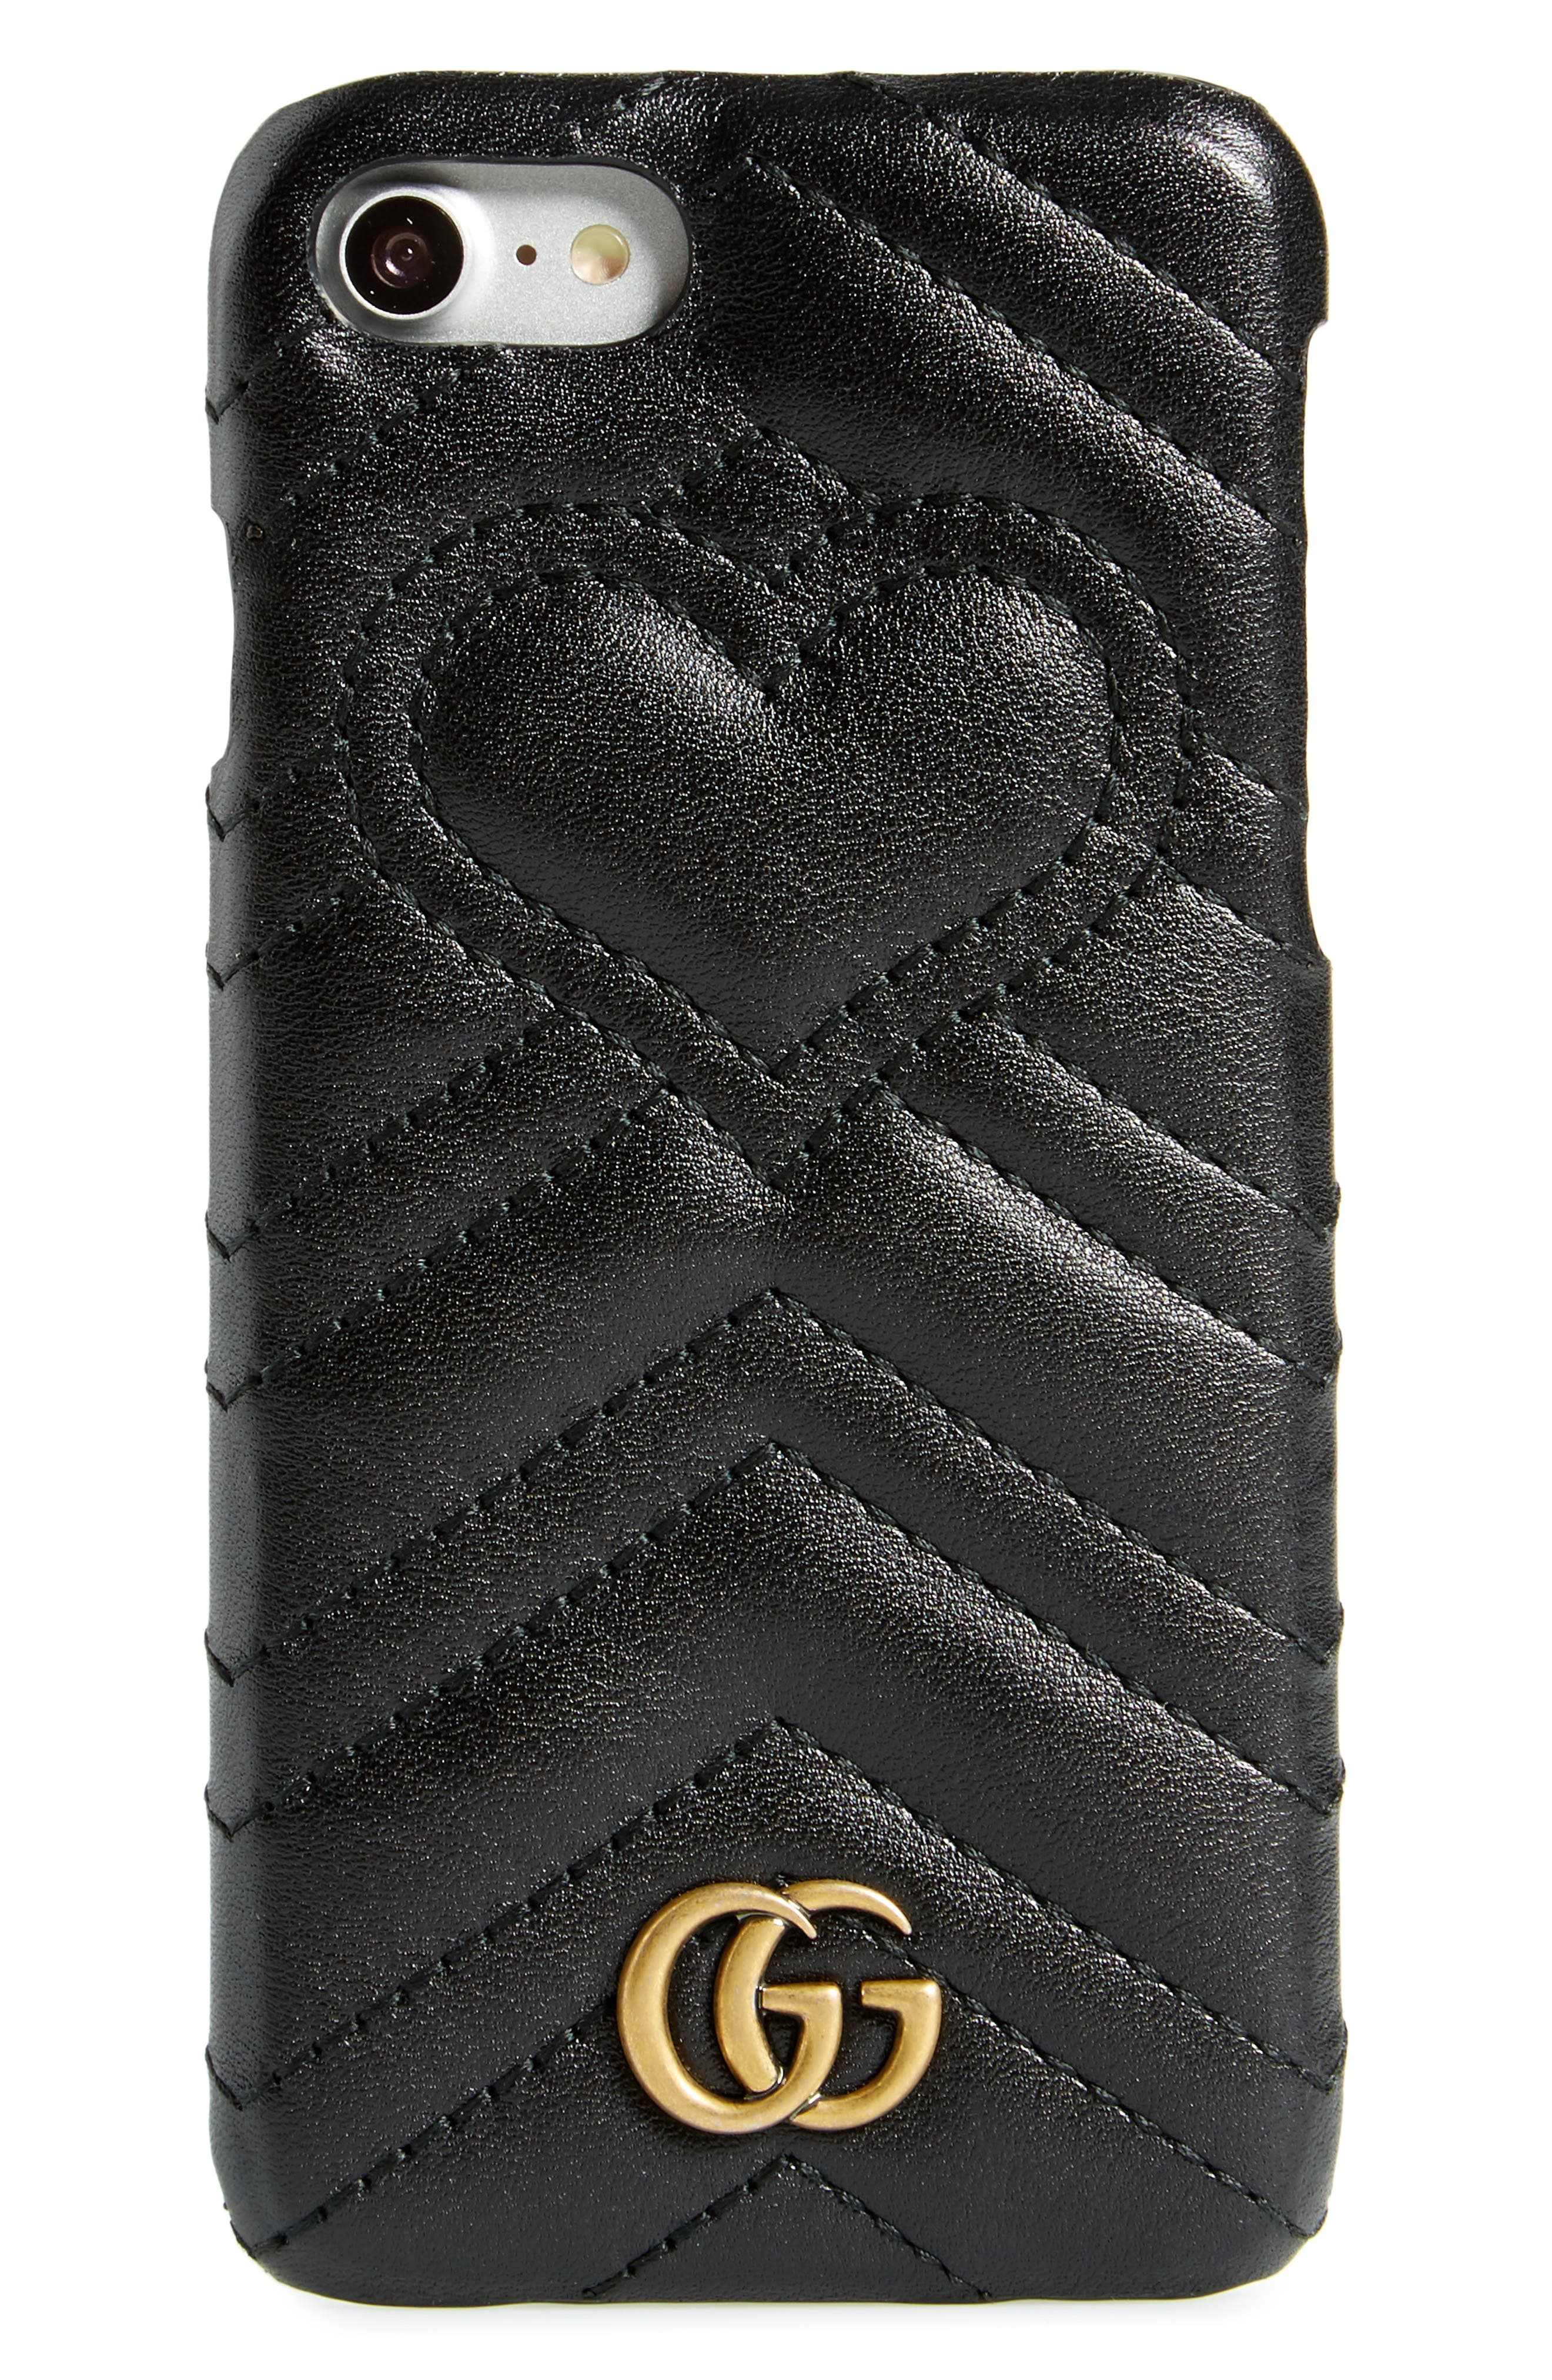 Main Image - Gucci GG Marmont Leather iPhone 7 Case